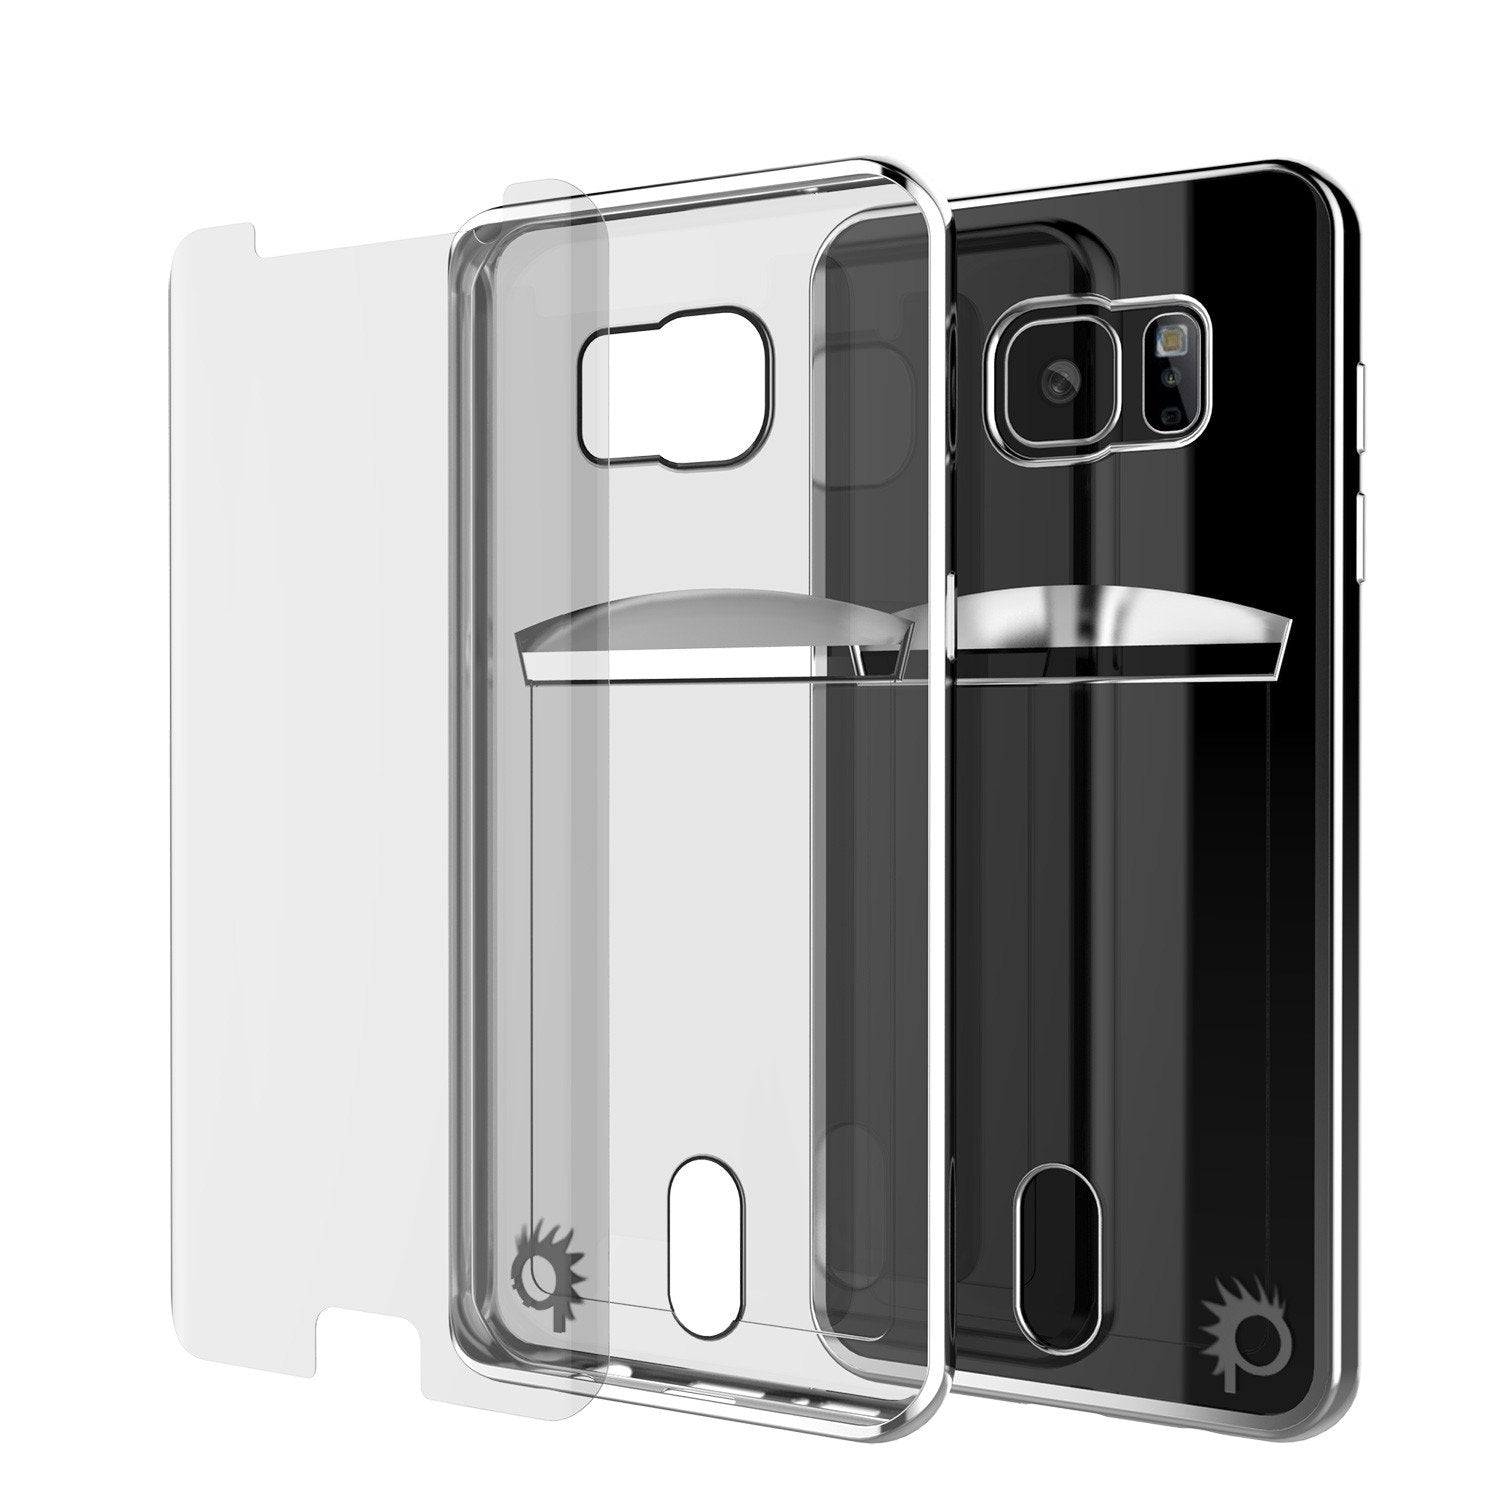 Galaxy S6 EDGE Case, PUNKCASE® LUCID Silver Series | Card Slot | SHIELD Screen Protector | Ultra fit